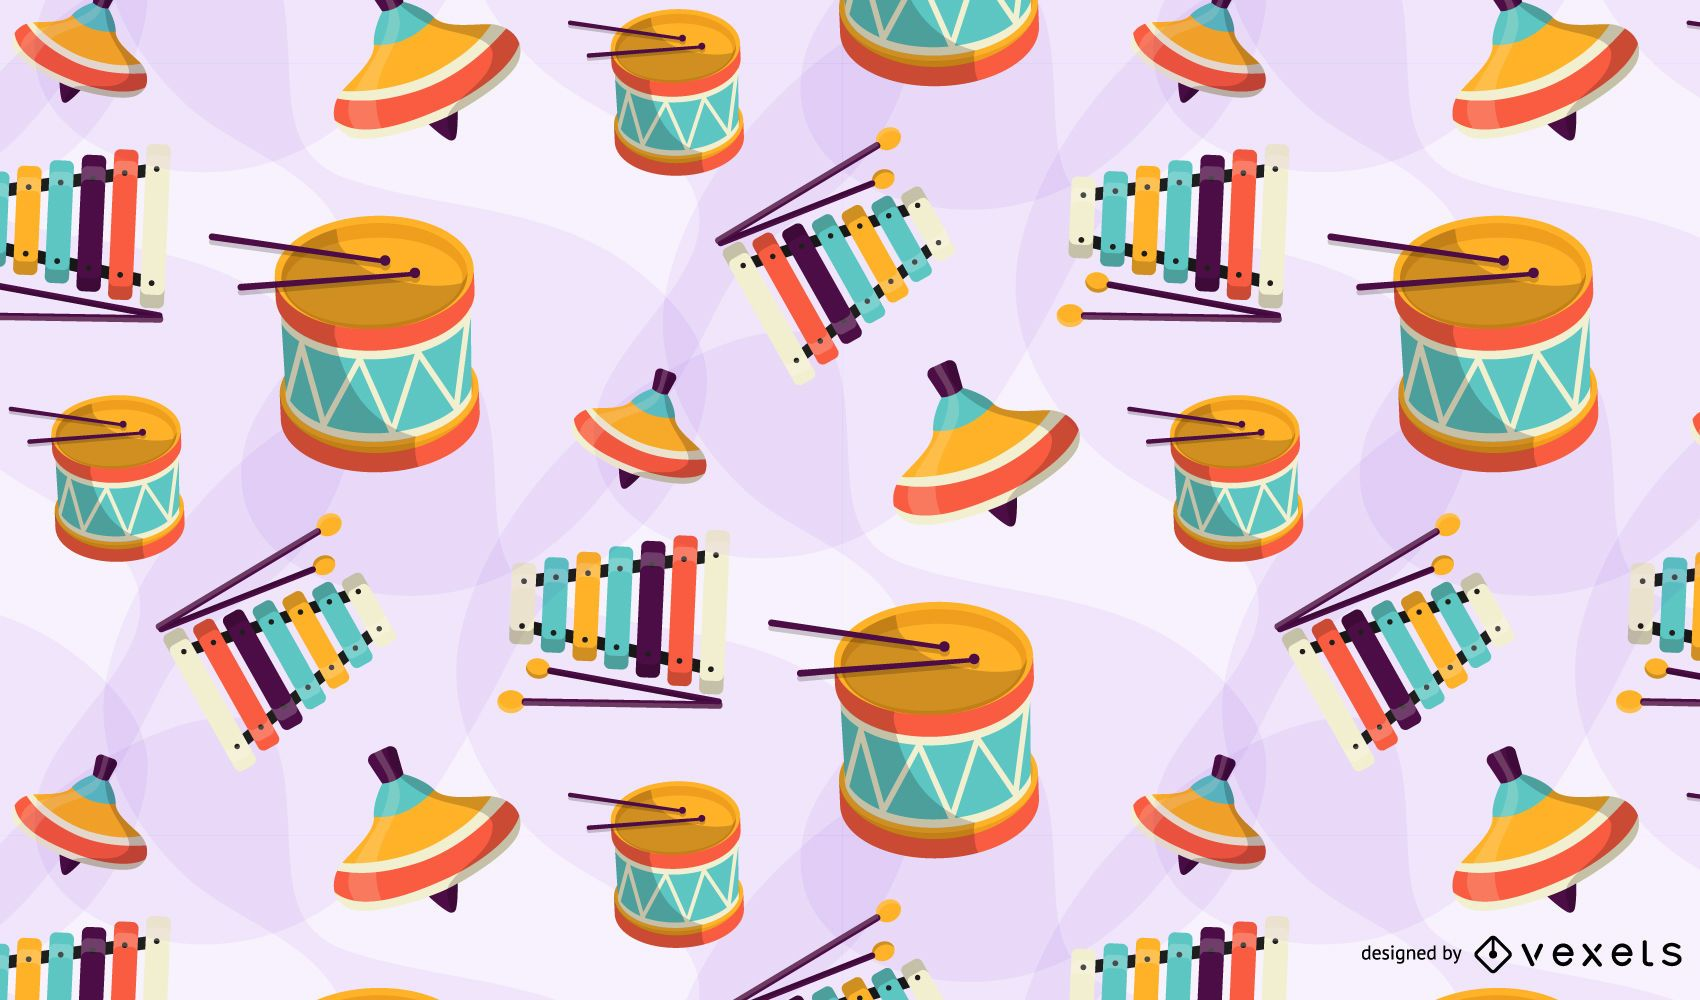 Colorful toys pattern design